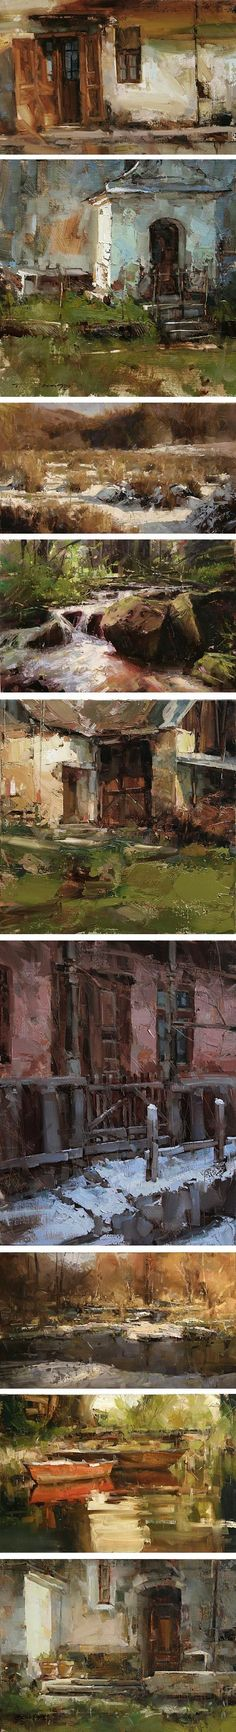 lines and colors :: a blog about drawing, painting, illustration, comics, concept art and other visual arts » Tibor Nagy: